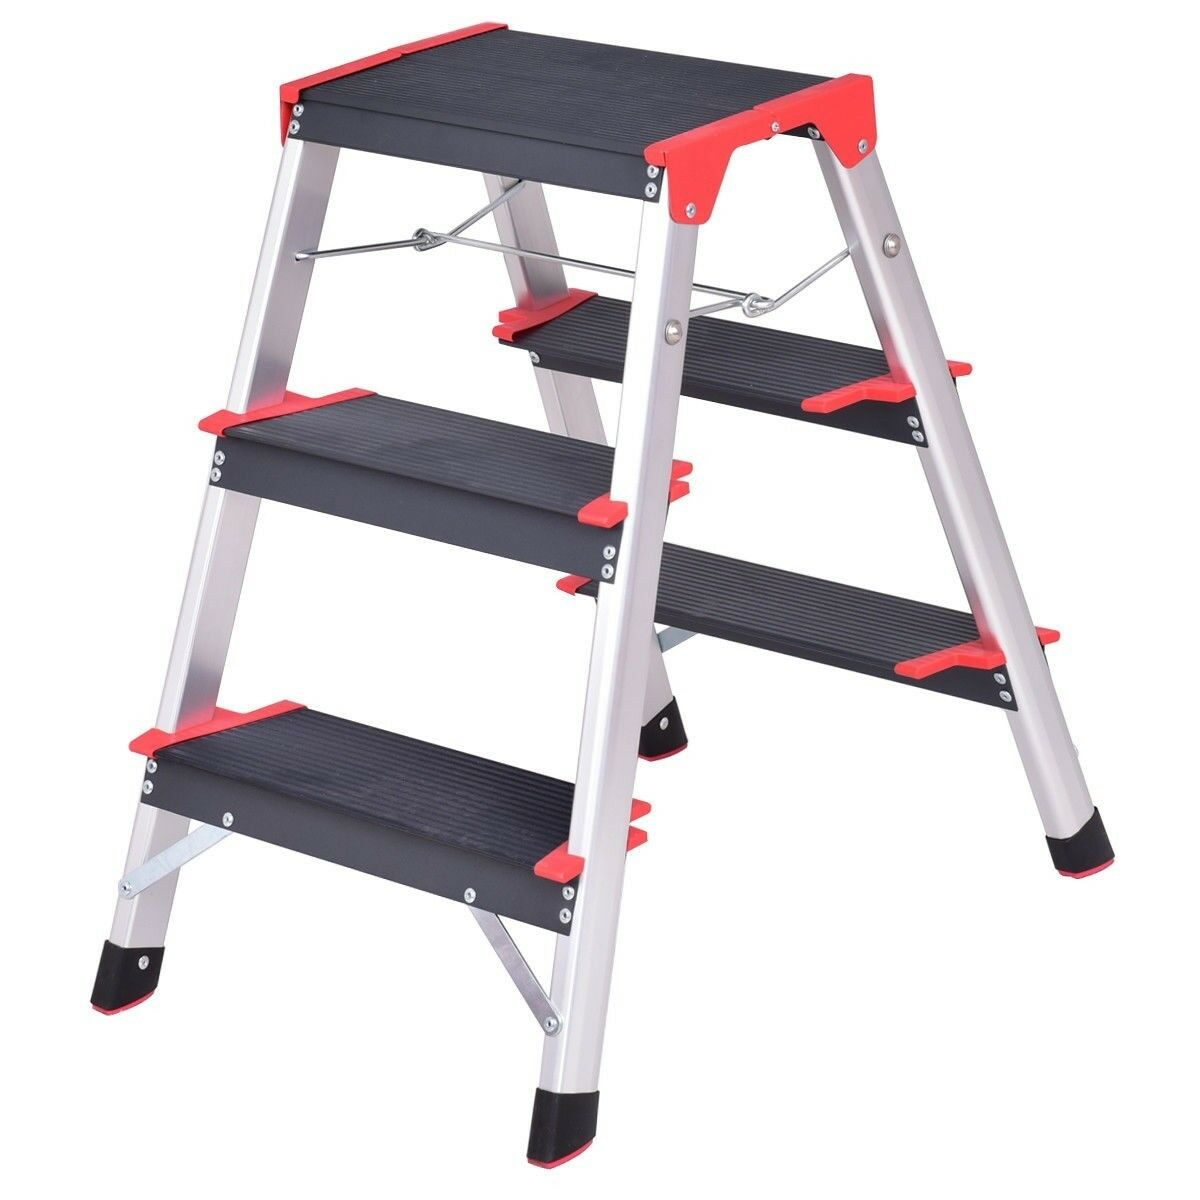 Predable 3 Step Ladder Folding Non Slip Safety Tread Heavy Duty Industrial Home